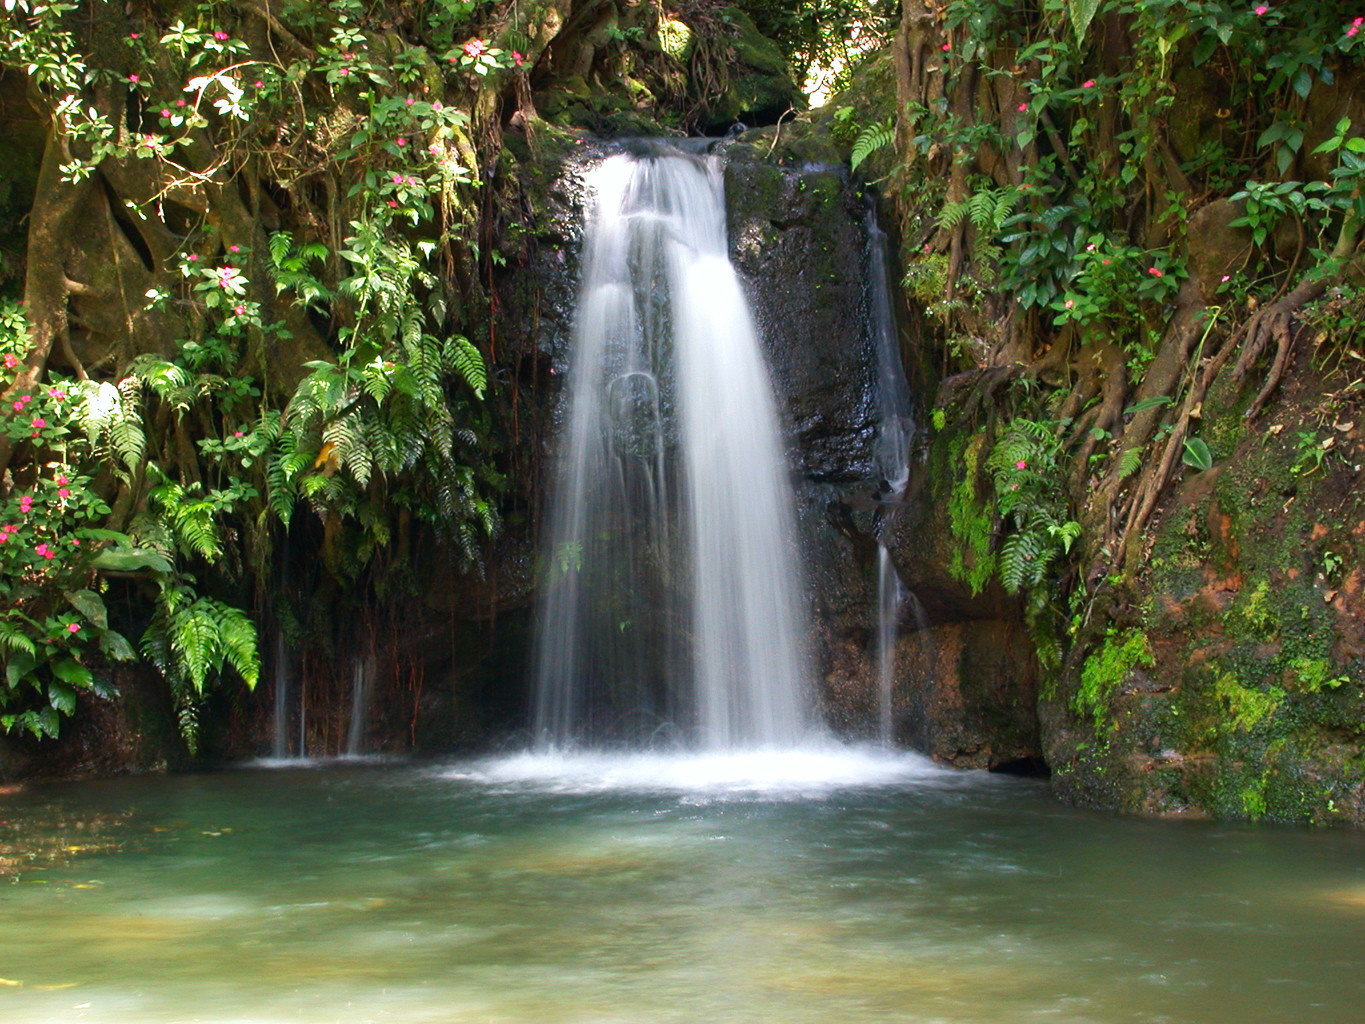 Natural wonders Outdoors Scenic views Waterfall tree Nature water habitat watercourse water feature botany rainforest Forest River stream wasserfall Jungle autumn